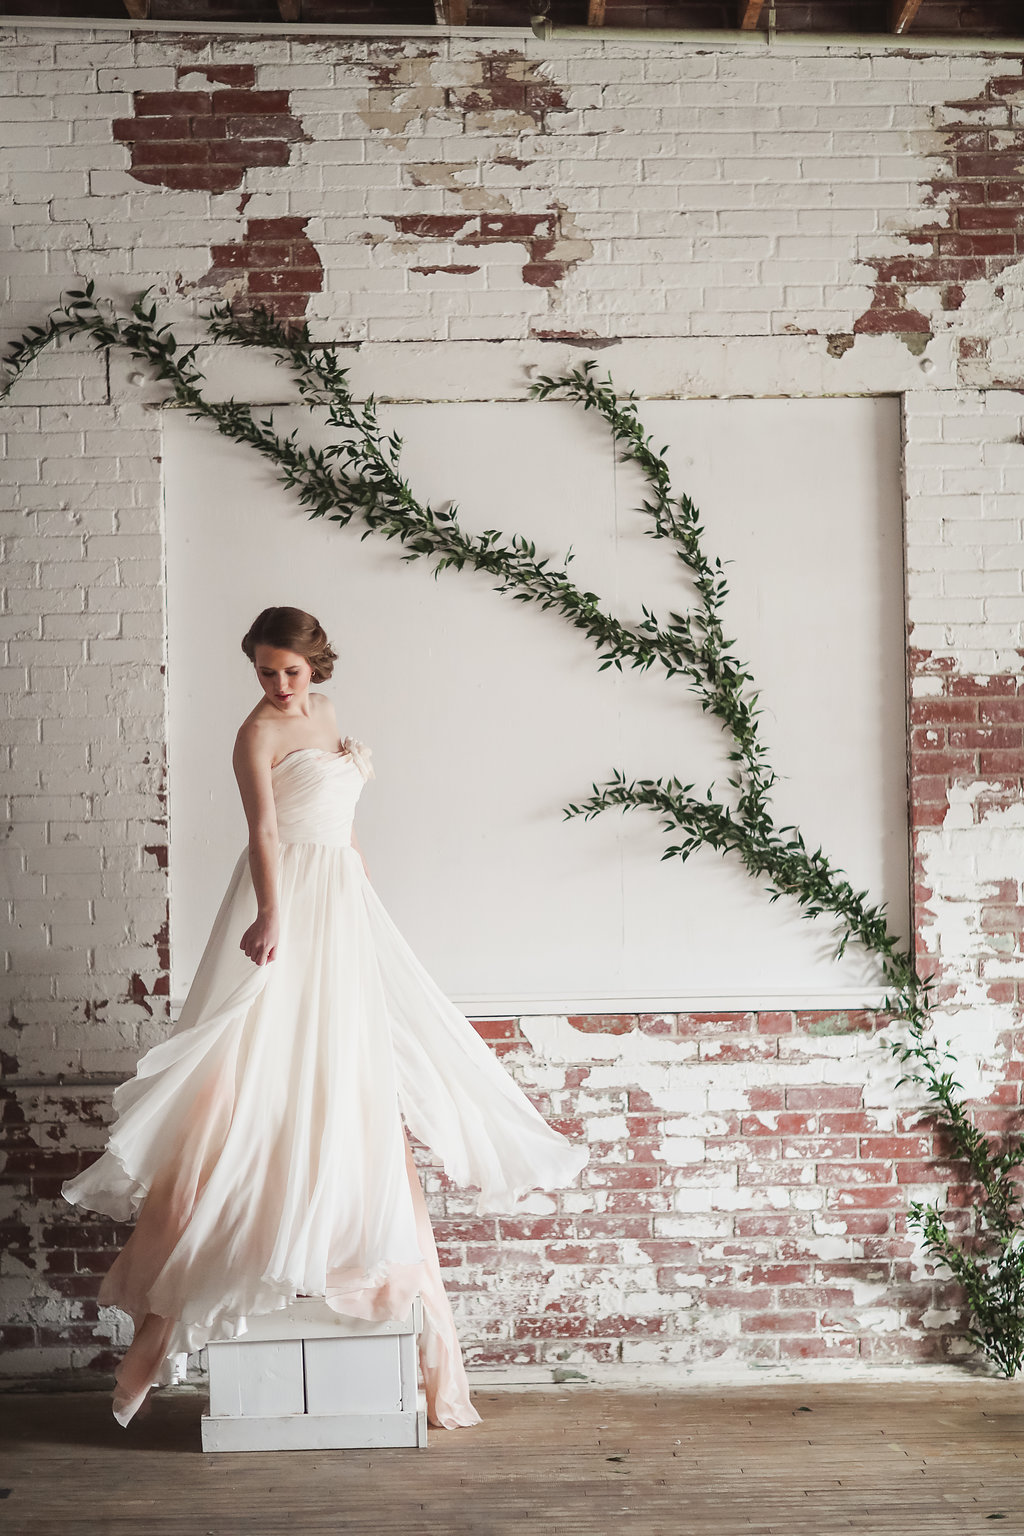 Another incredible gown by Eugenia Couture featuring a floral installation by Allium Design